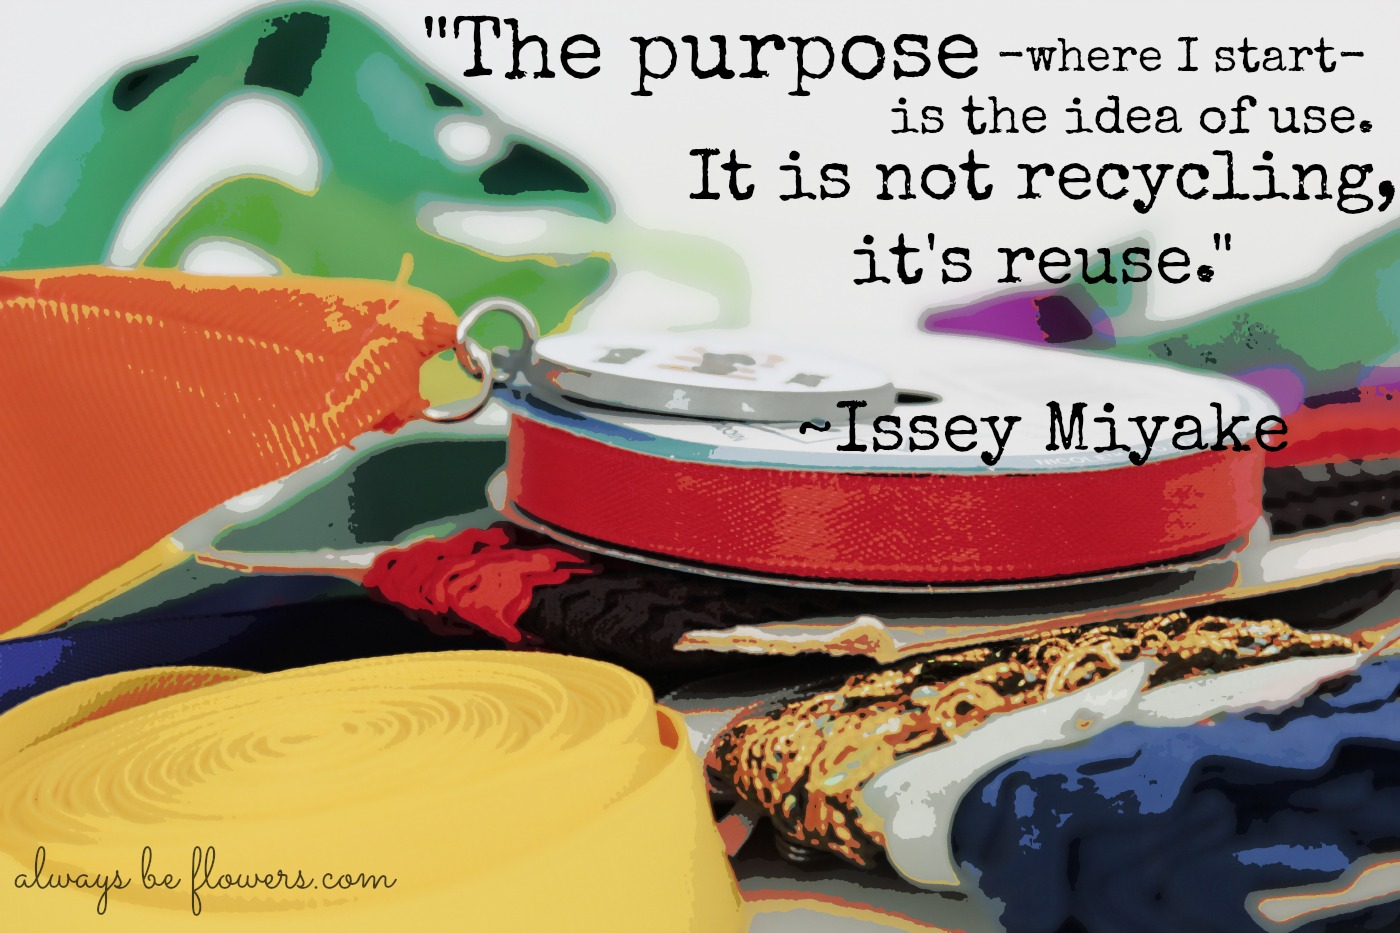 purpose-is-reuse-issey-miyake.jpg